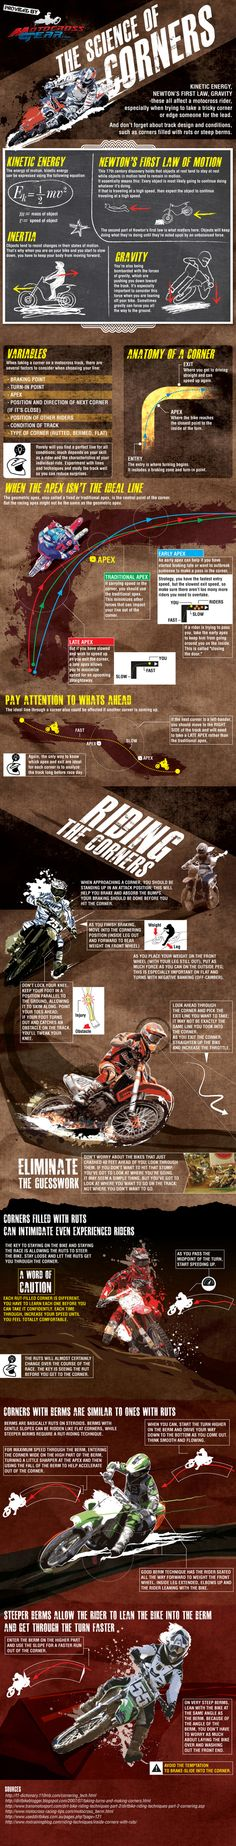 Here is an infographic that gives information about the science of corners and how it affects motocross riders